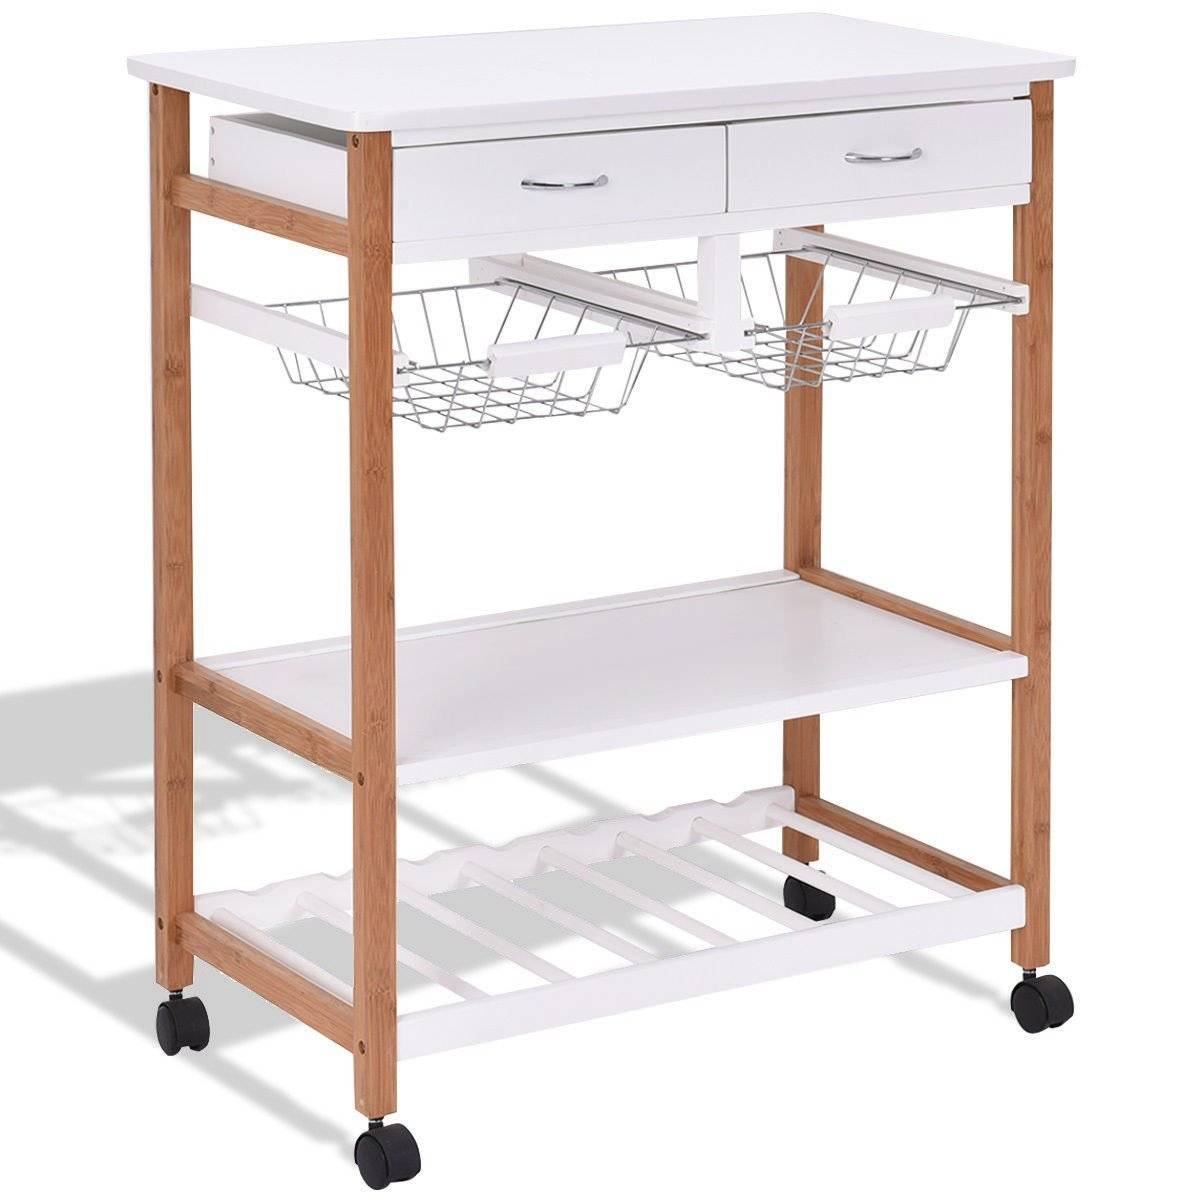 MD Group Kitchen Island Trolley Cart White Rolling Utility Serving Food Storage Furniture